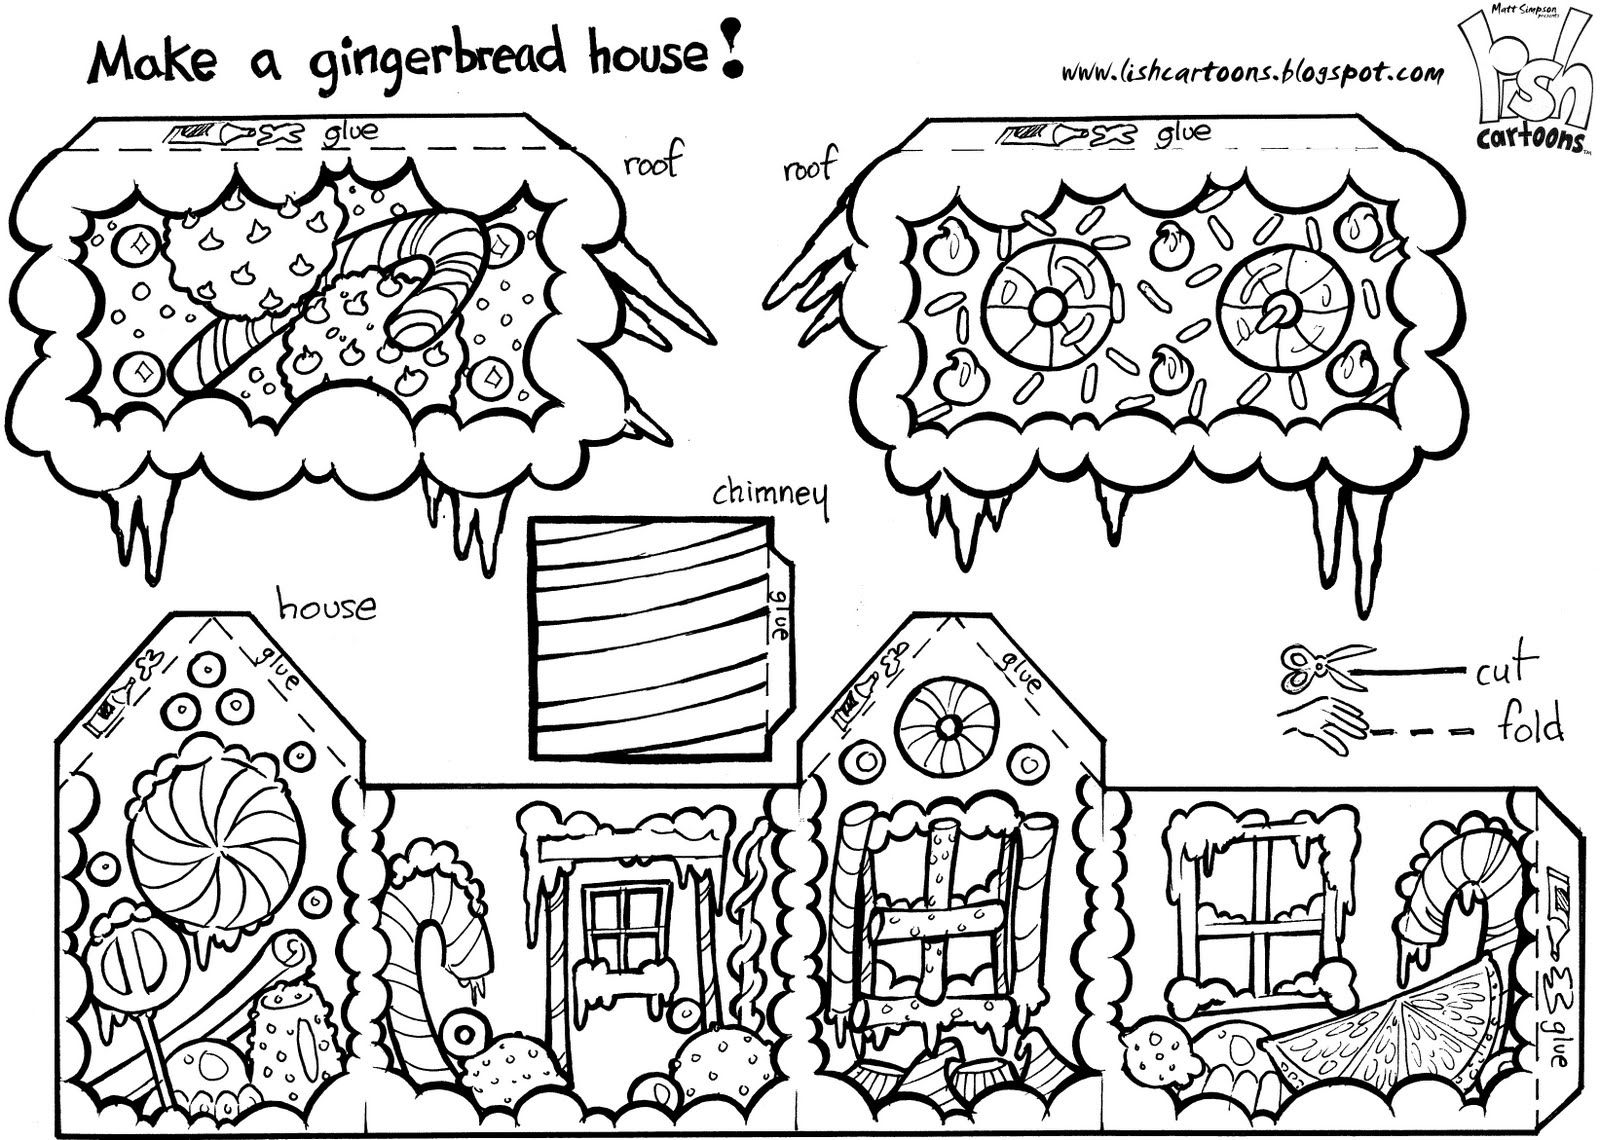 Gingerbread House to Color, Cut Out & Assemble doodling